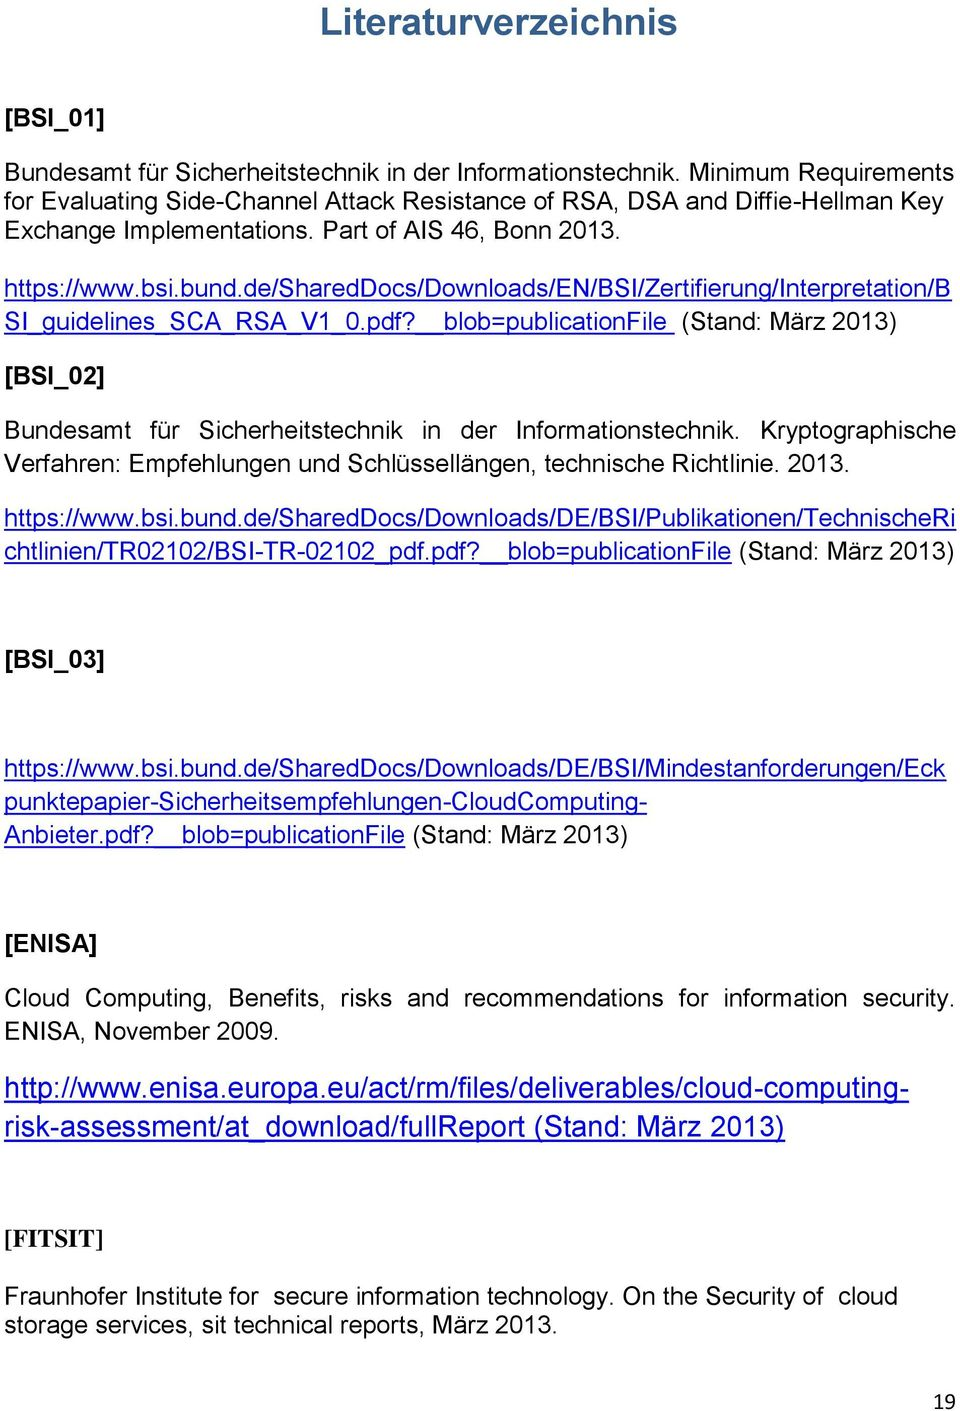 de/shareddocs/downloads/en/bsi/zertifierung/interpretation/b SI_guidelines_SCA_RSA_V1_0.pdf?